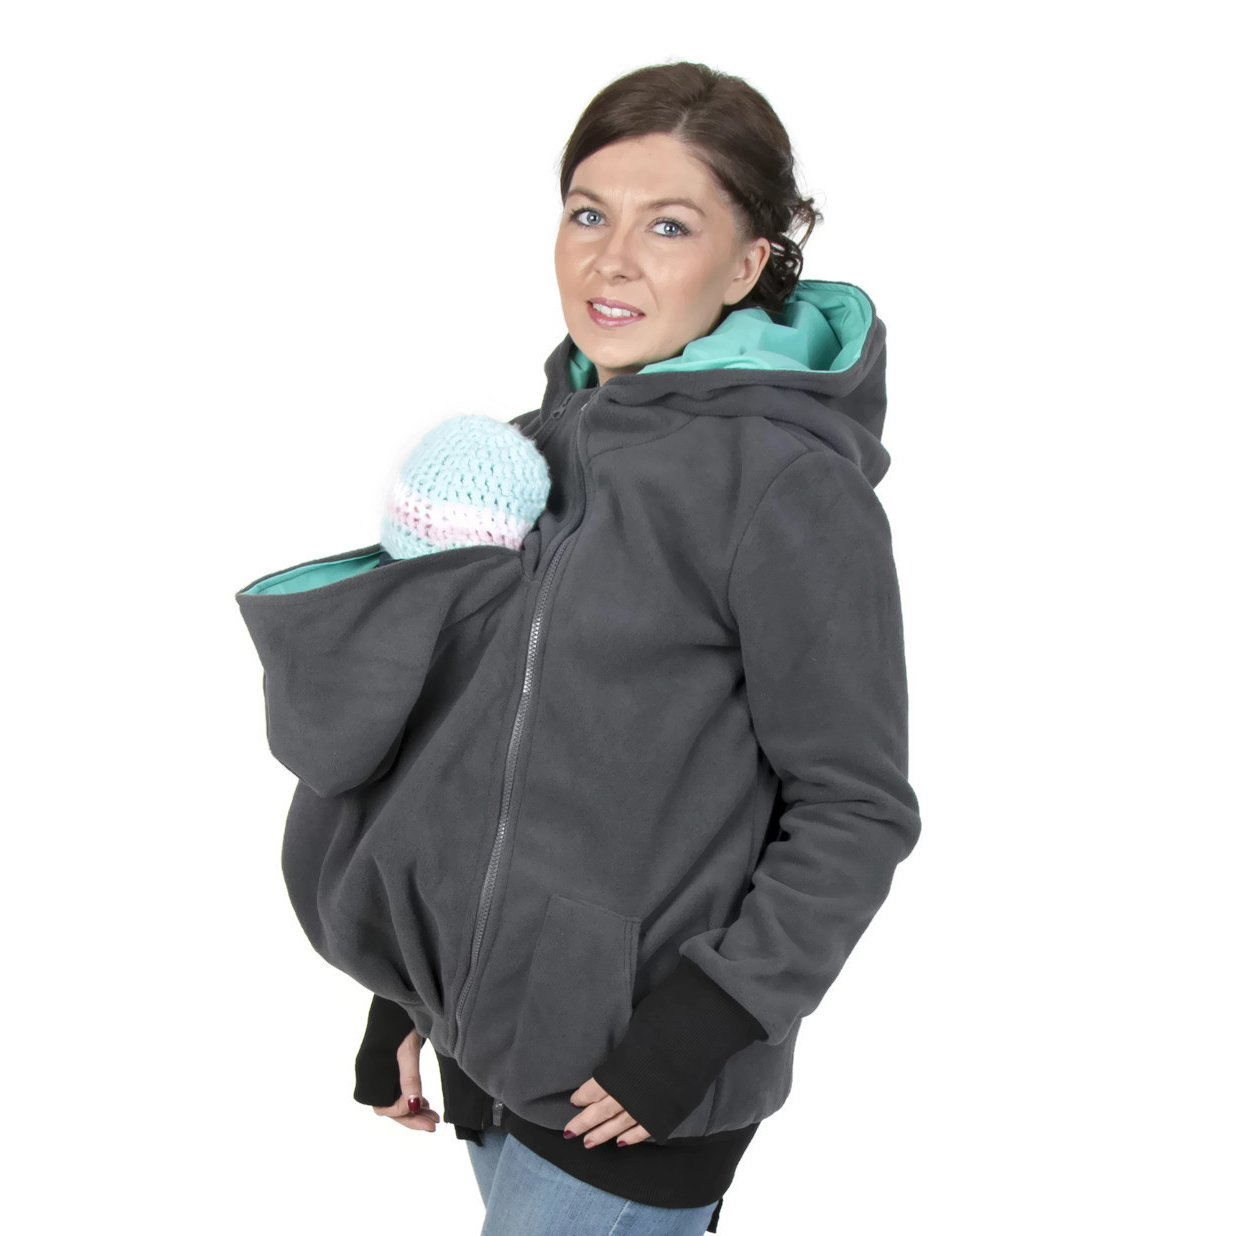 3in1 Maternity Multifunctional Kangaroo Hoodie/jacket for MOM and Baby, Baby Carrying Hoodie (L/XL US 10/12)